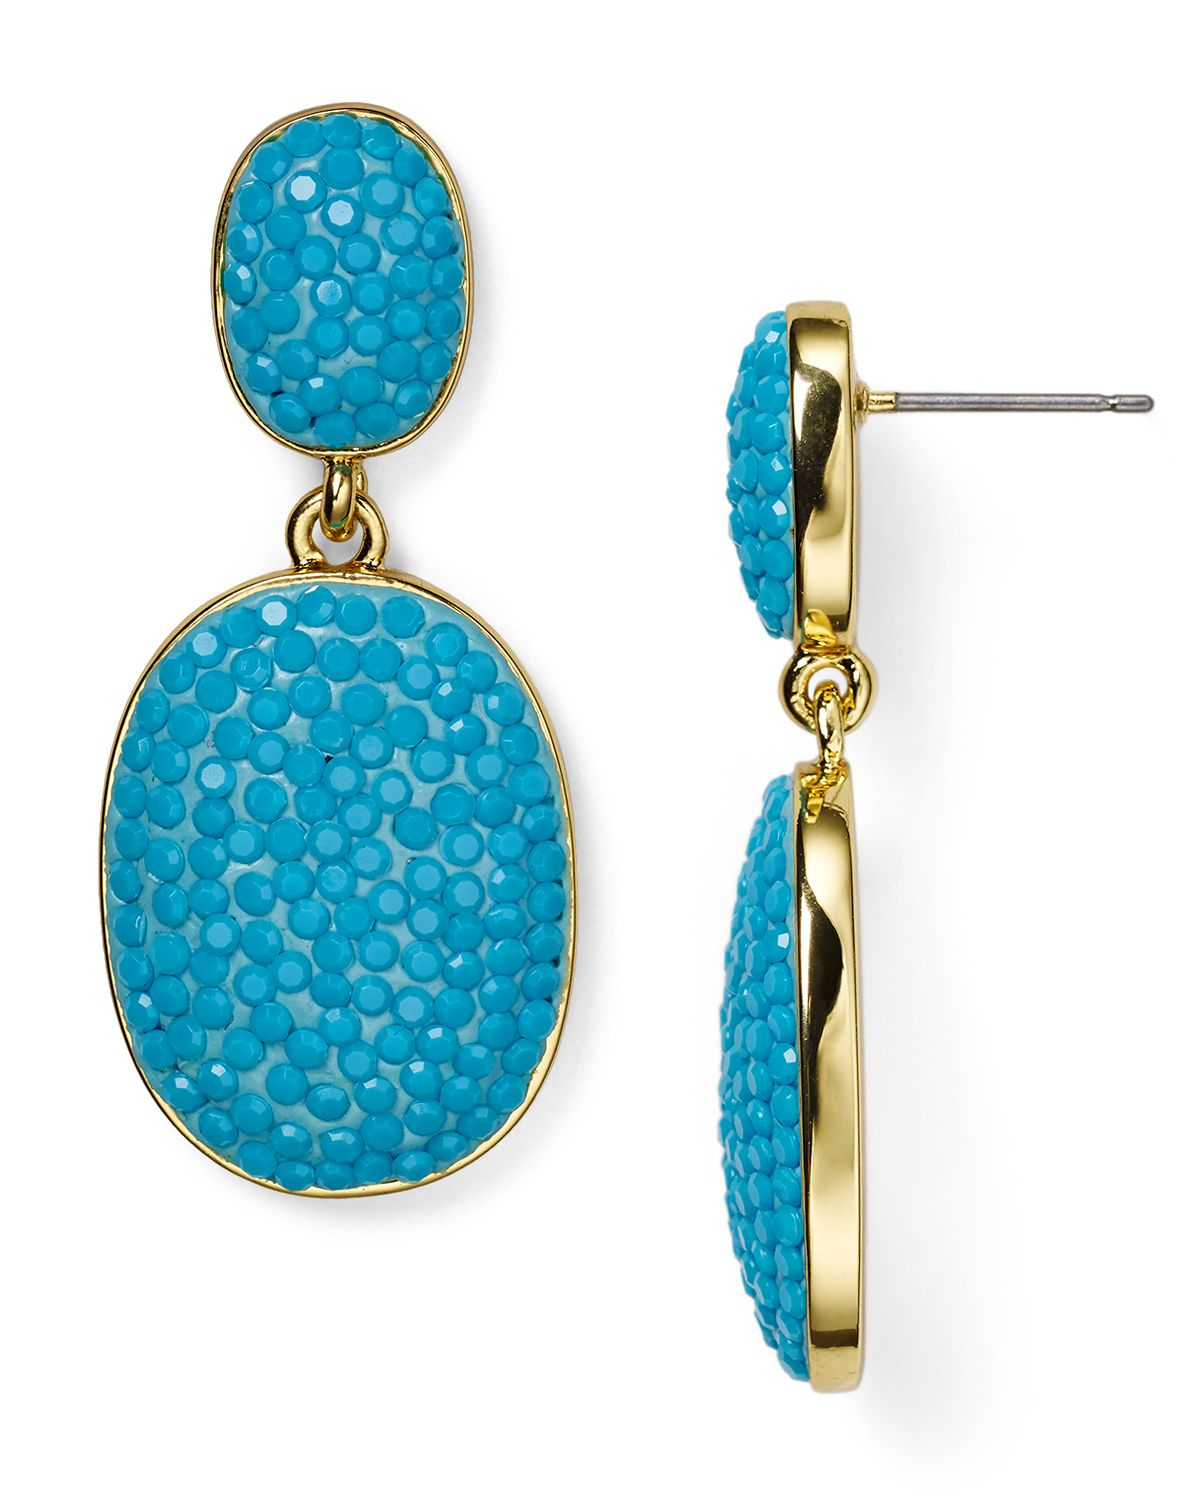 Spade Jewelry: Kate Spade New York Pave The Way Drop Earrings In